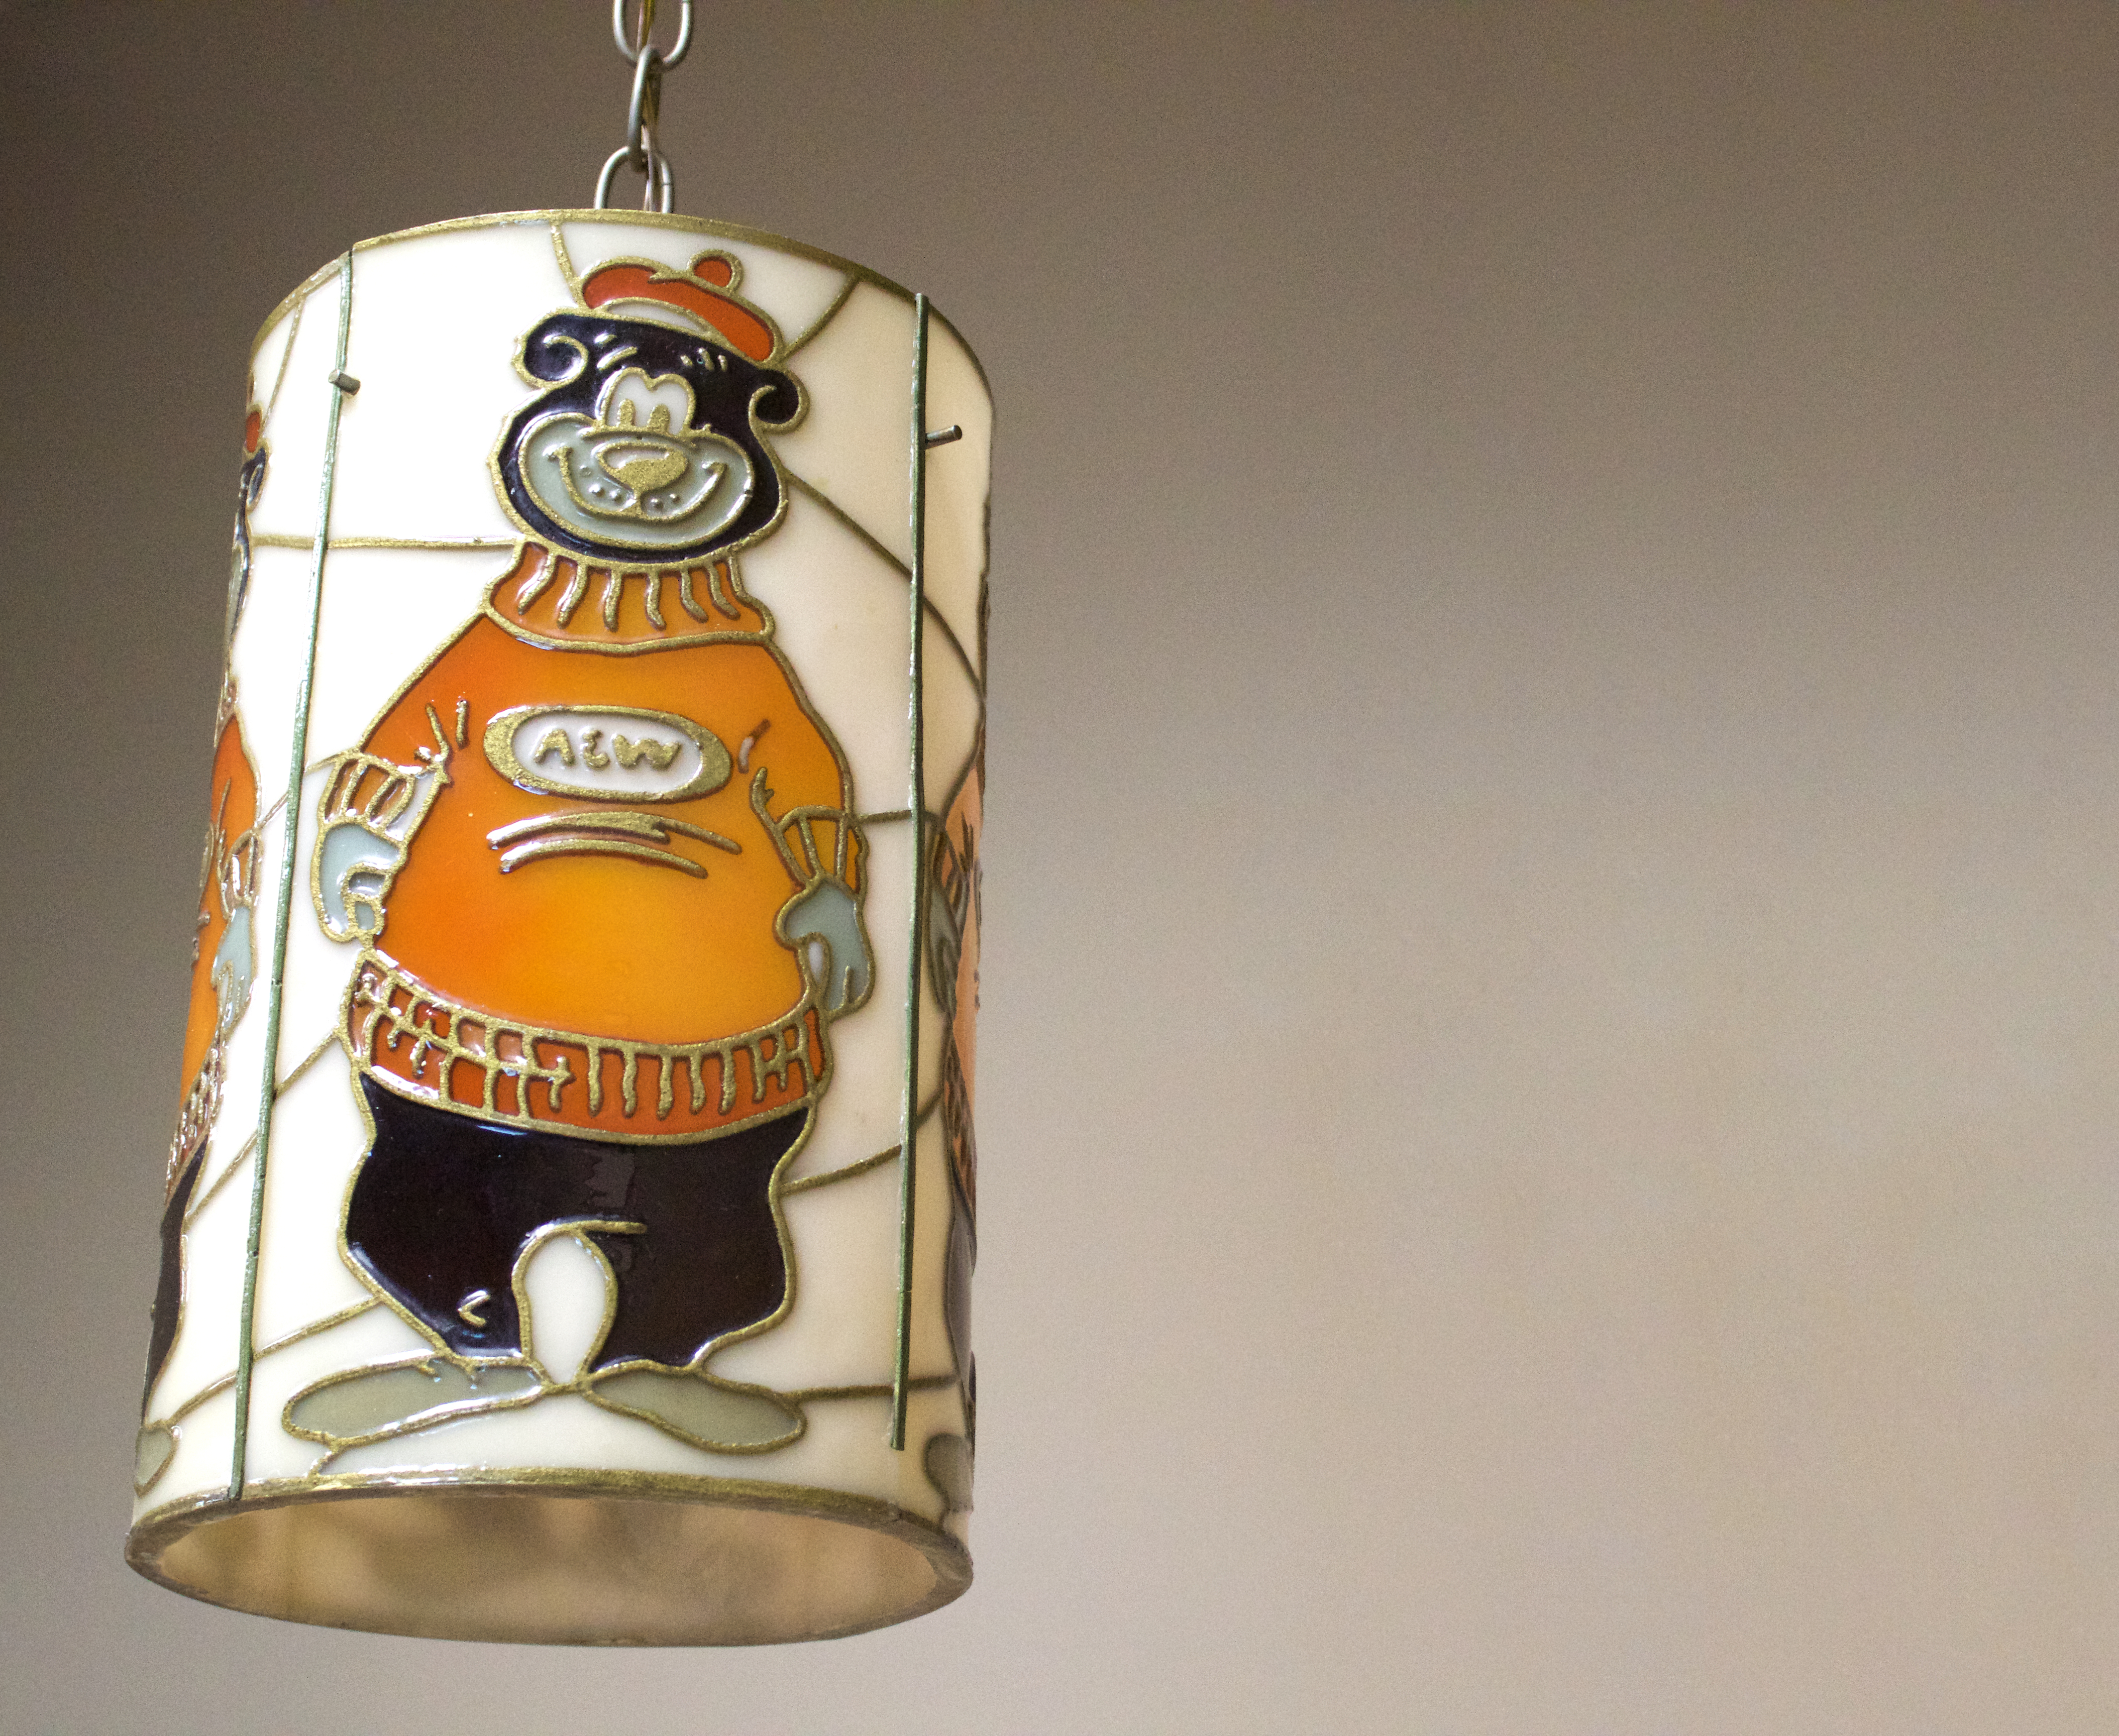 Hanging lamp of Rooty the Great Root Bear